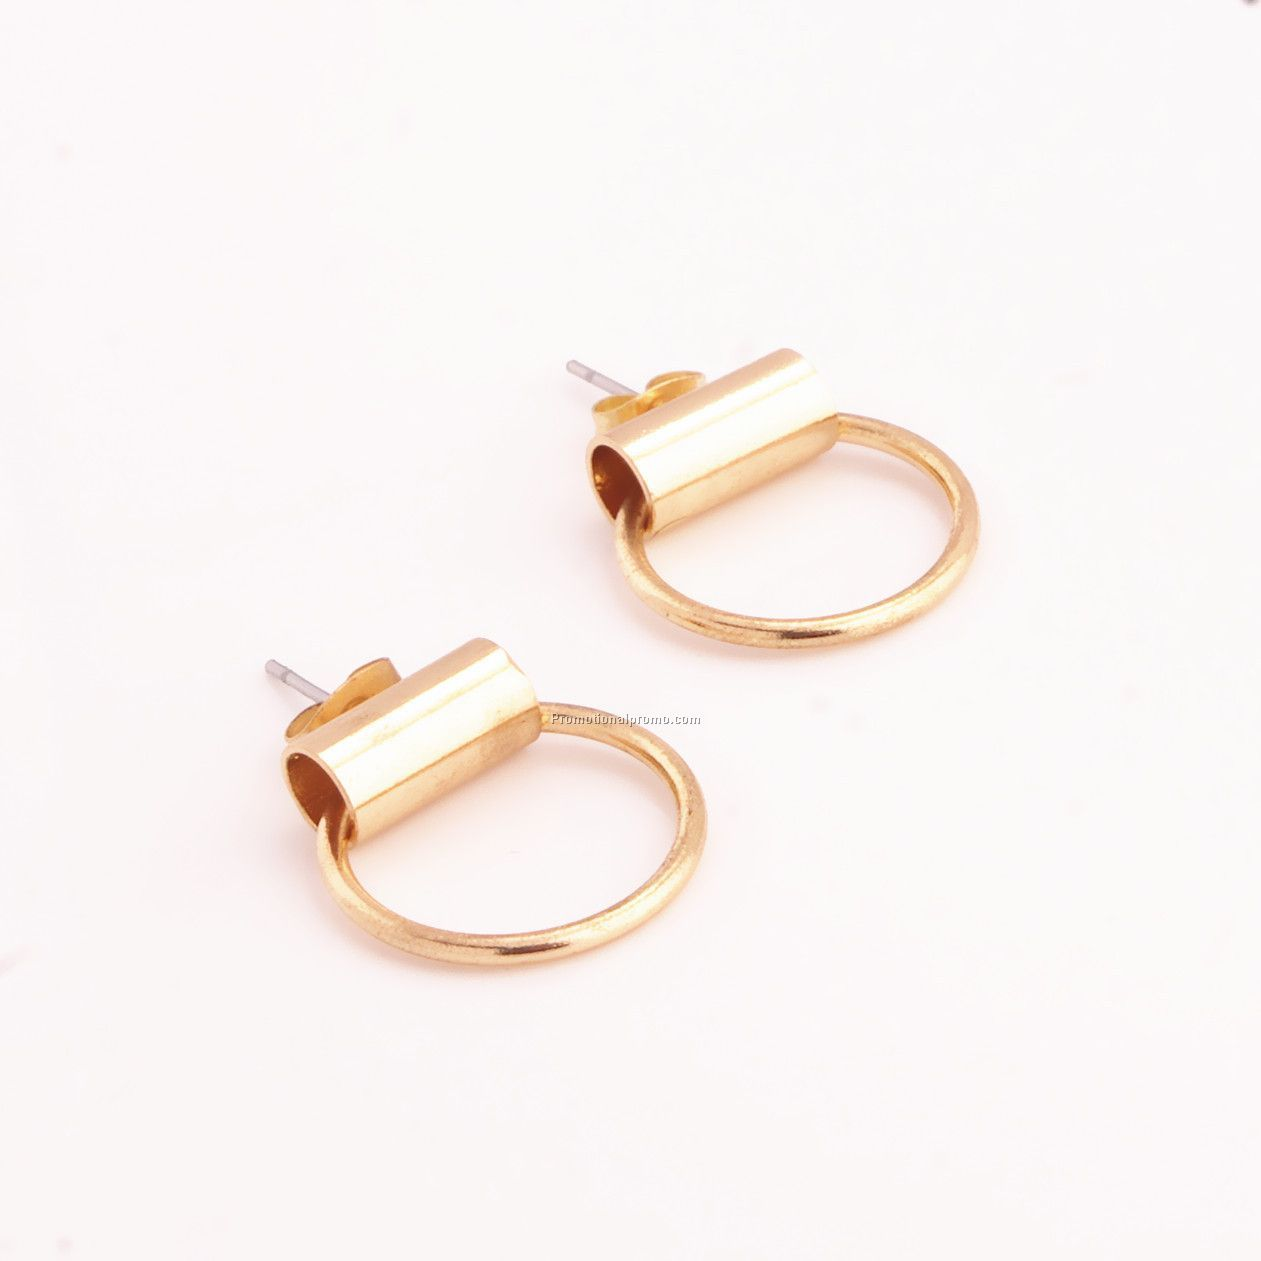 Gold and Silver Latest Fashion Simple Metal Stud Earrings